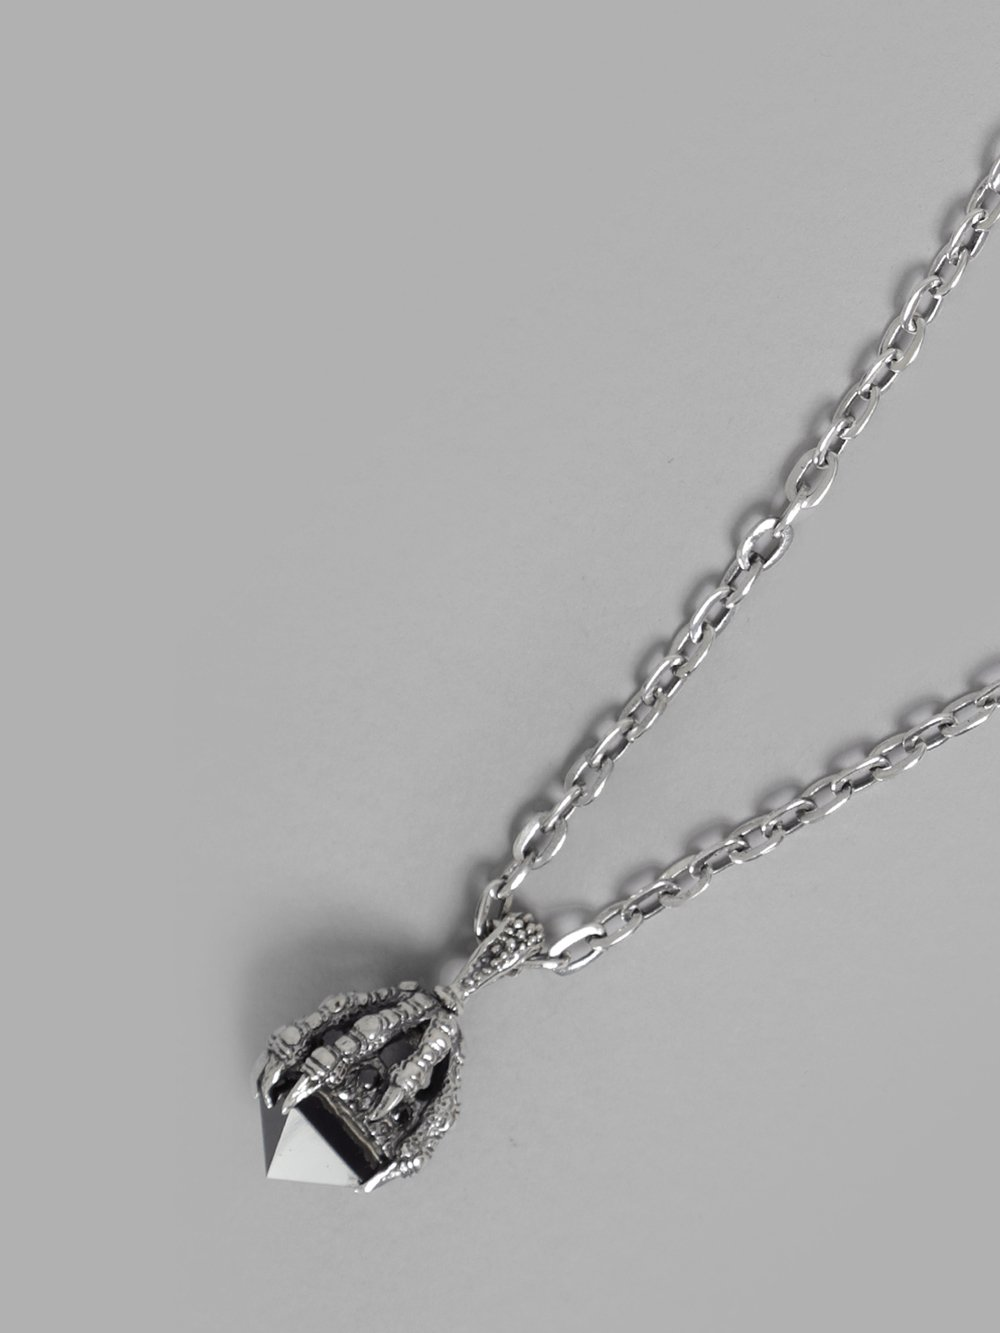 KD2024 Kd2024 Silver Pendent Kannibal Necklace